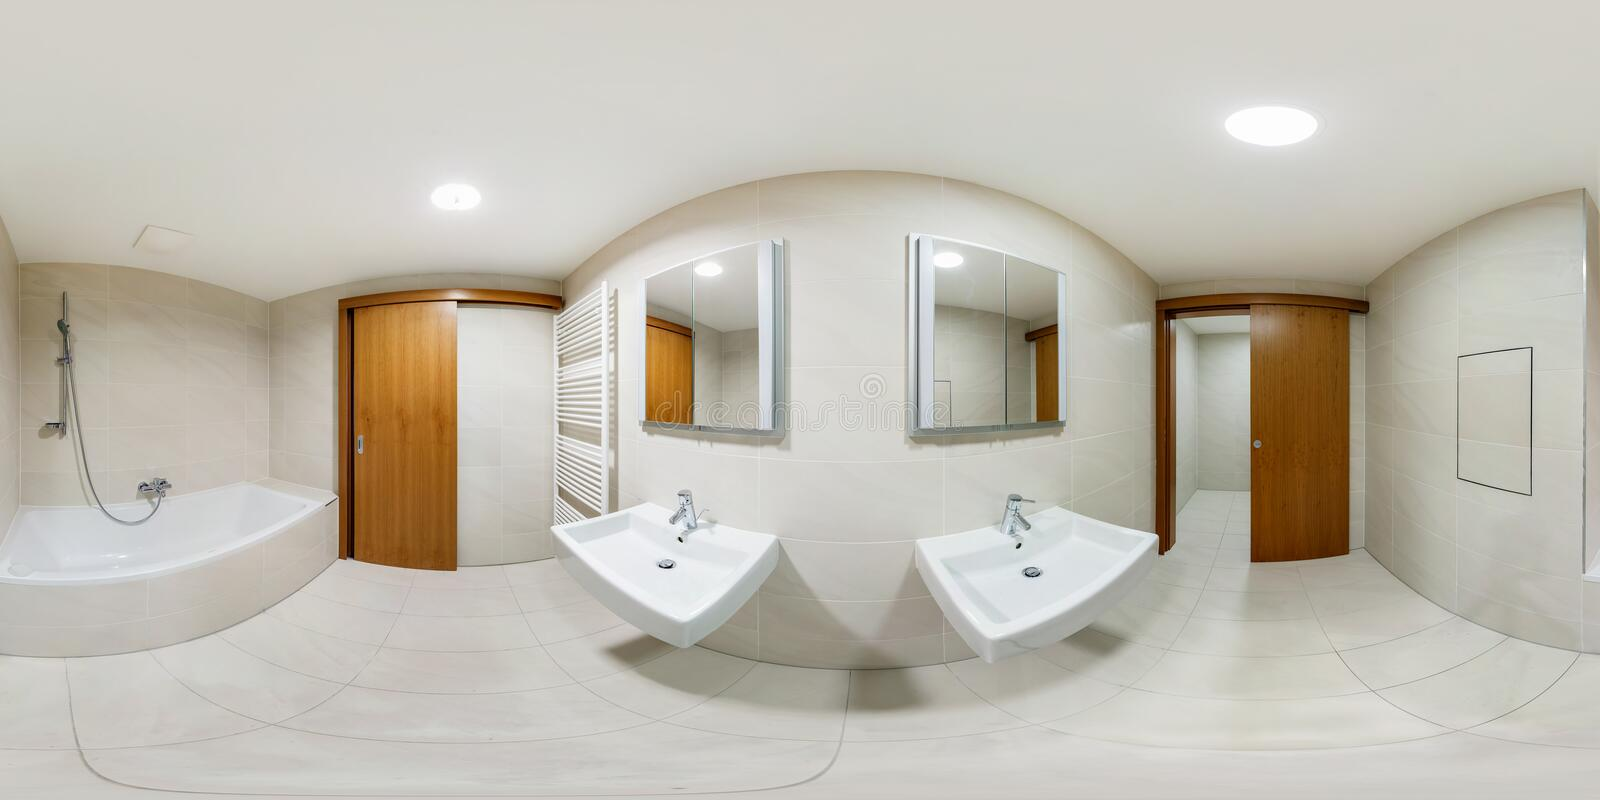 Inside of the interior of white bathroom in minimalistic style. Full 360 degree panorama royalty free stock photography